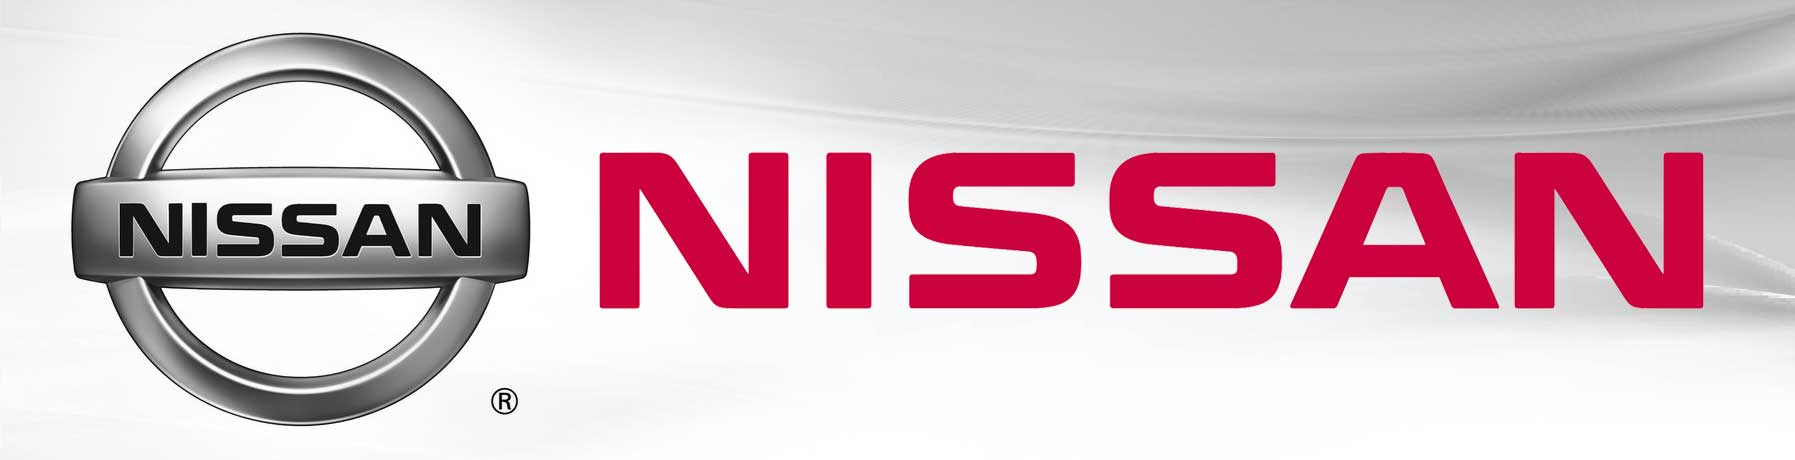 We service Nissan vehicles